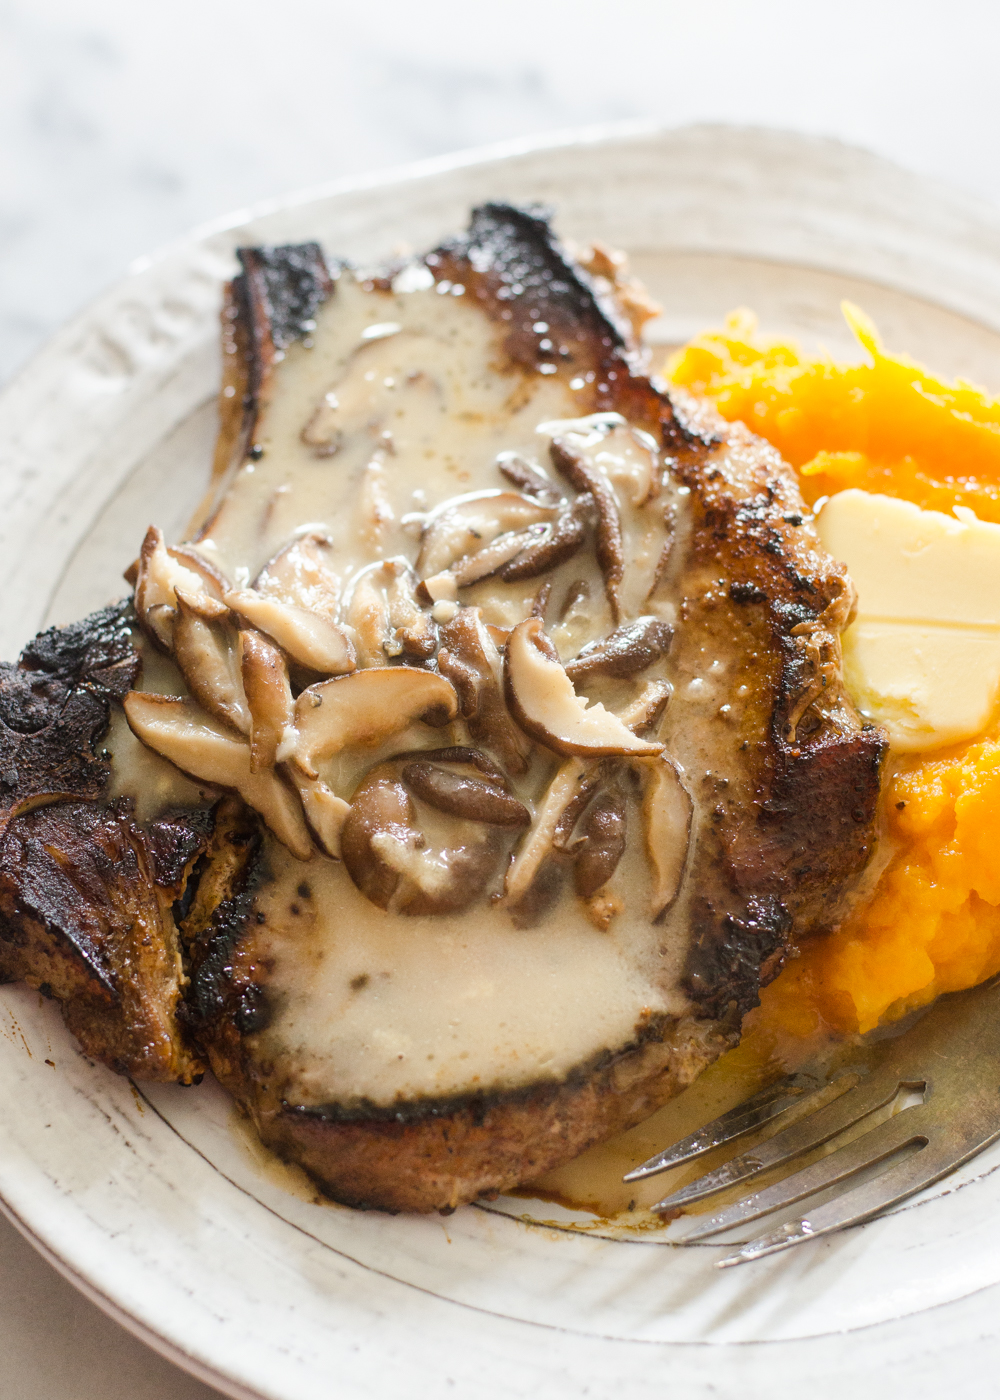 Butcher Box Review Meal 12 - Pork Chops with Creamy Shiitake Gravy